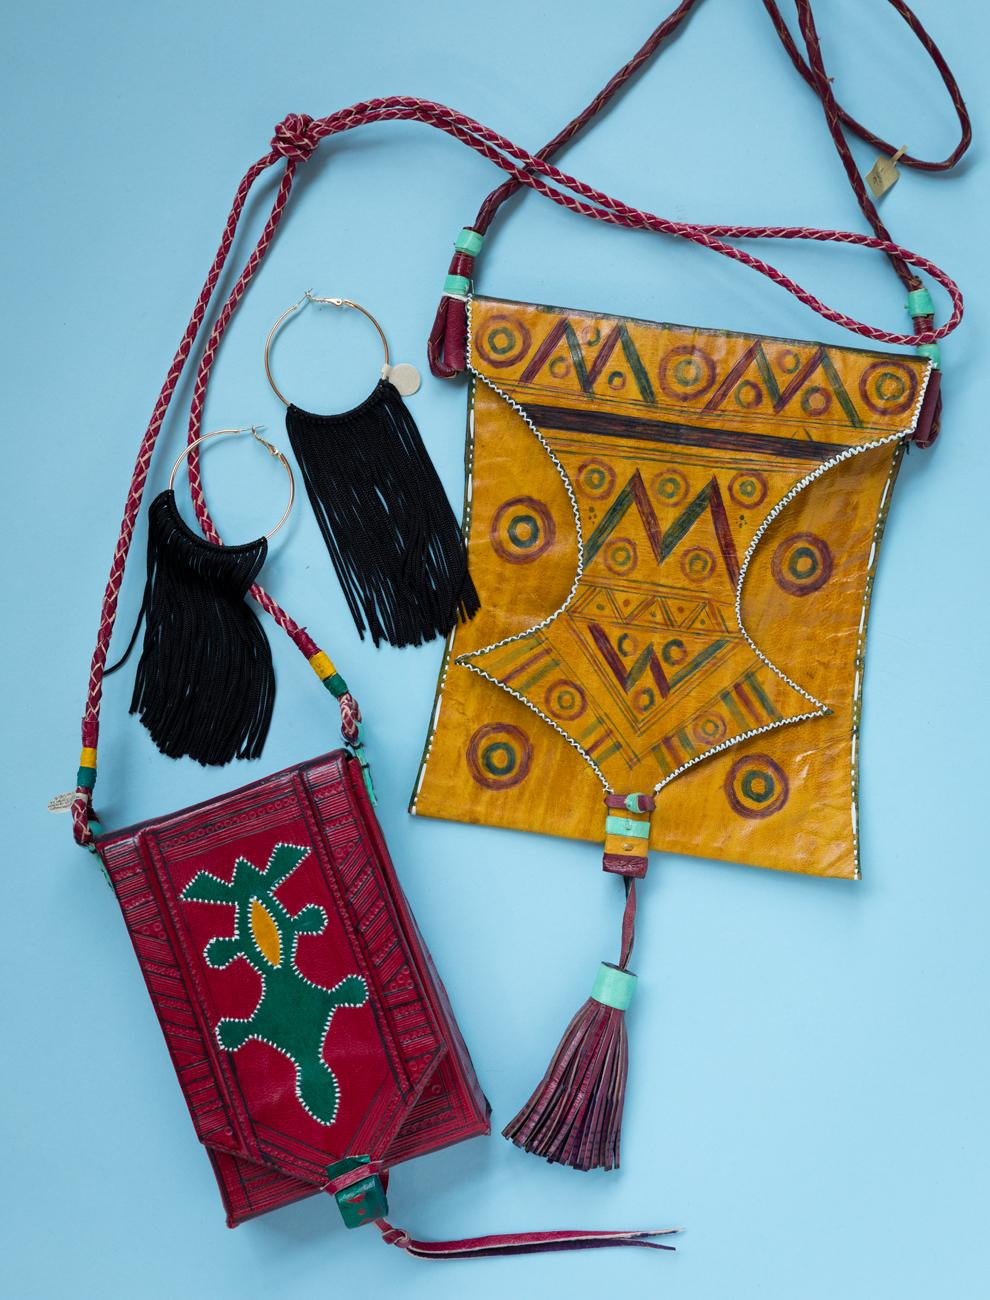 African purses and modern jewelry / Image: Marlene Rounds // Published: 9.30.18